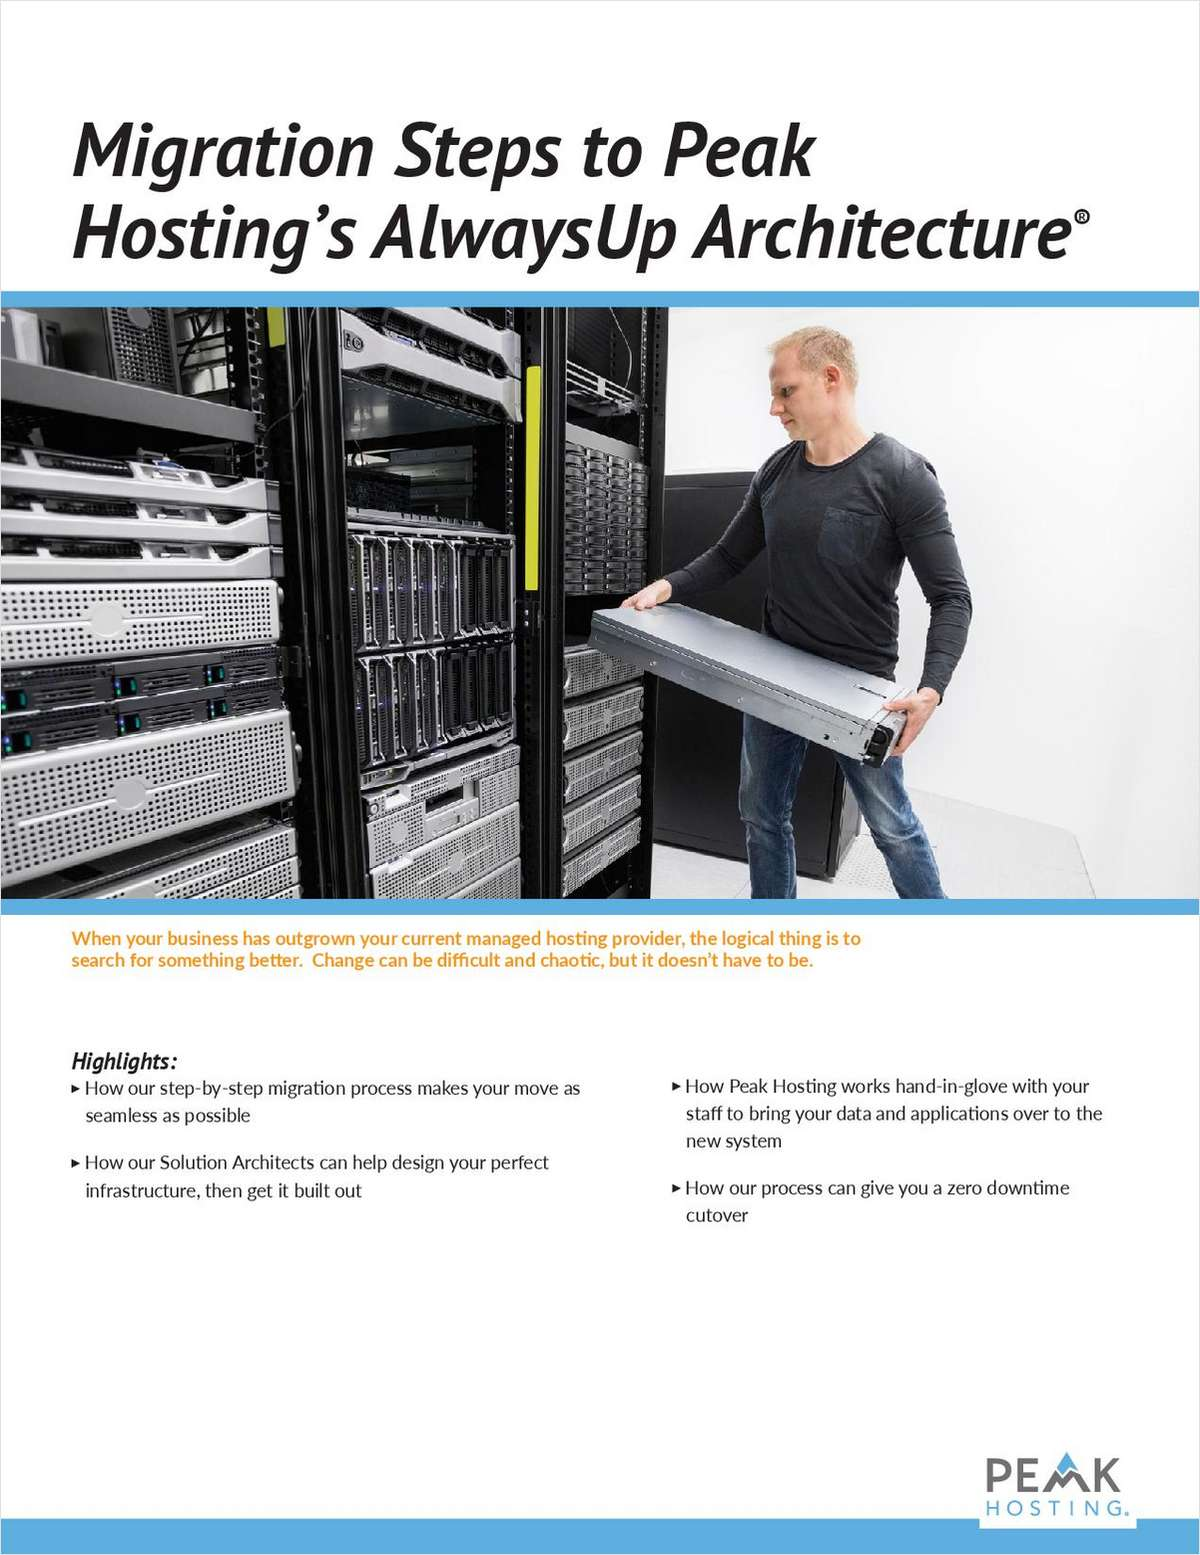 Migration Steps to Peak Hosting's AlwaysUp Architecture